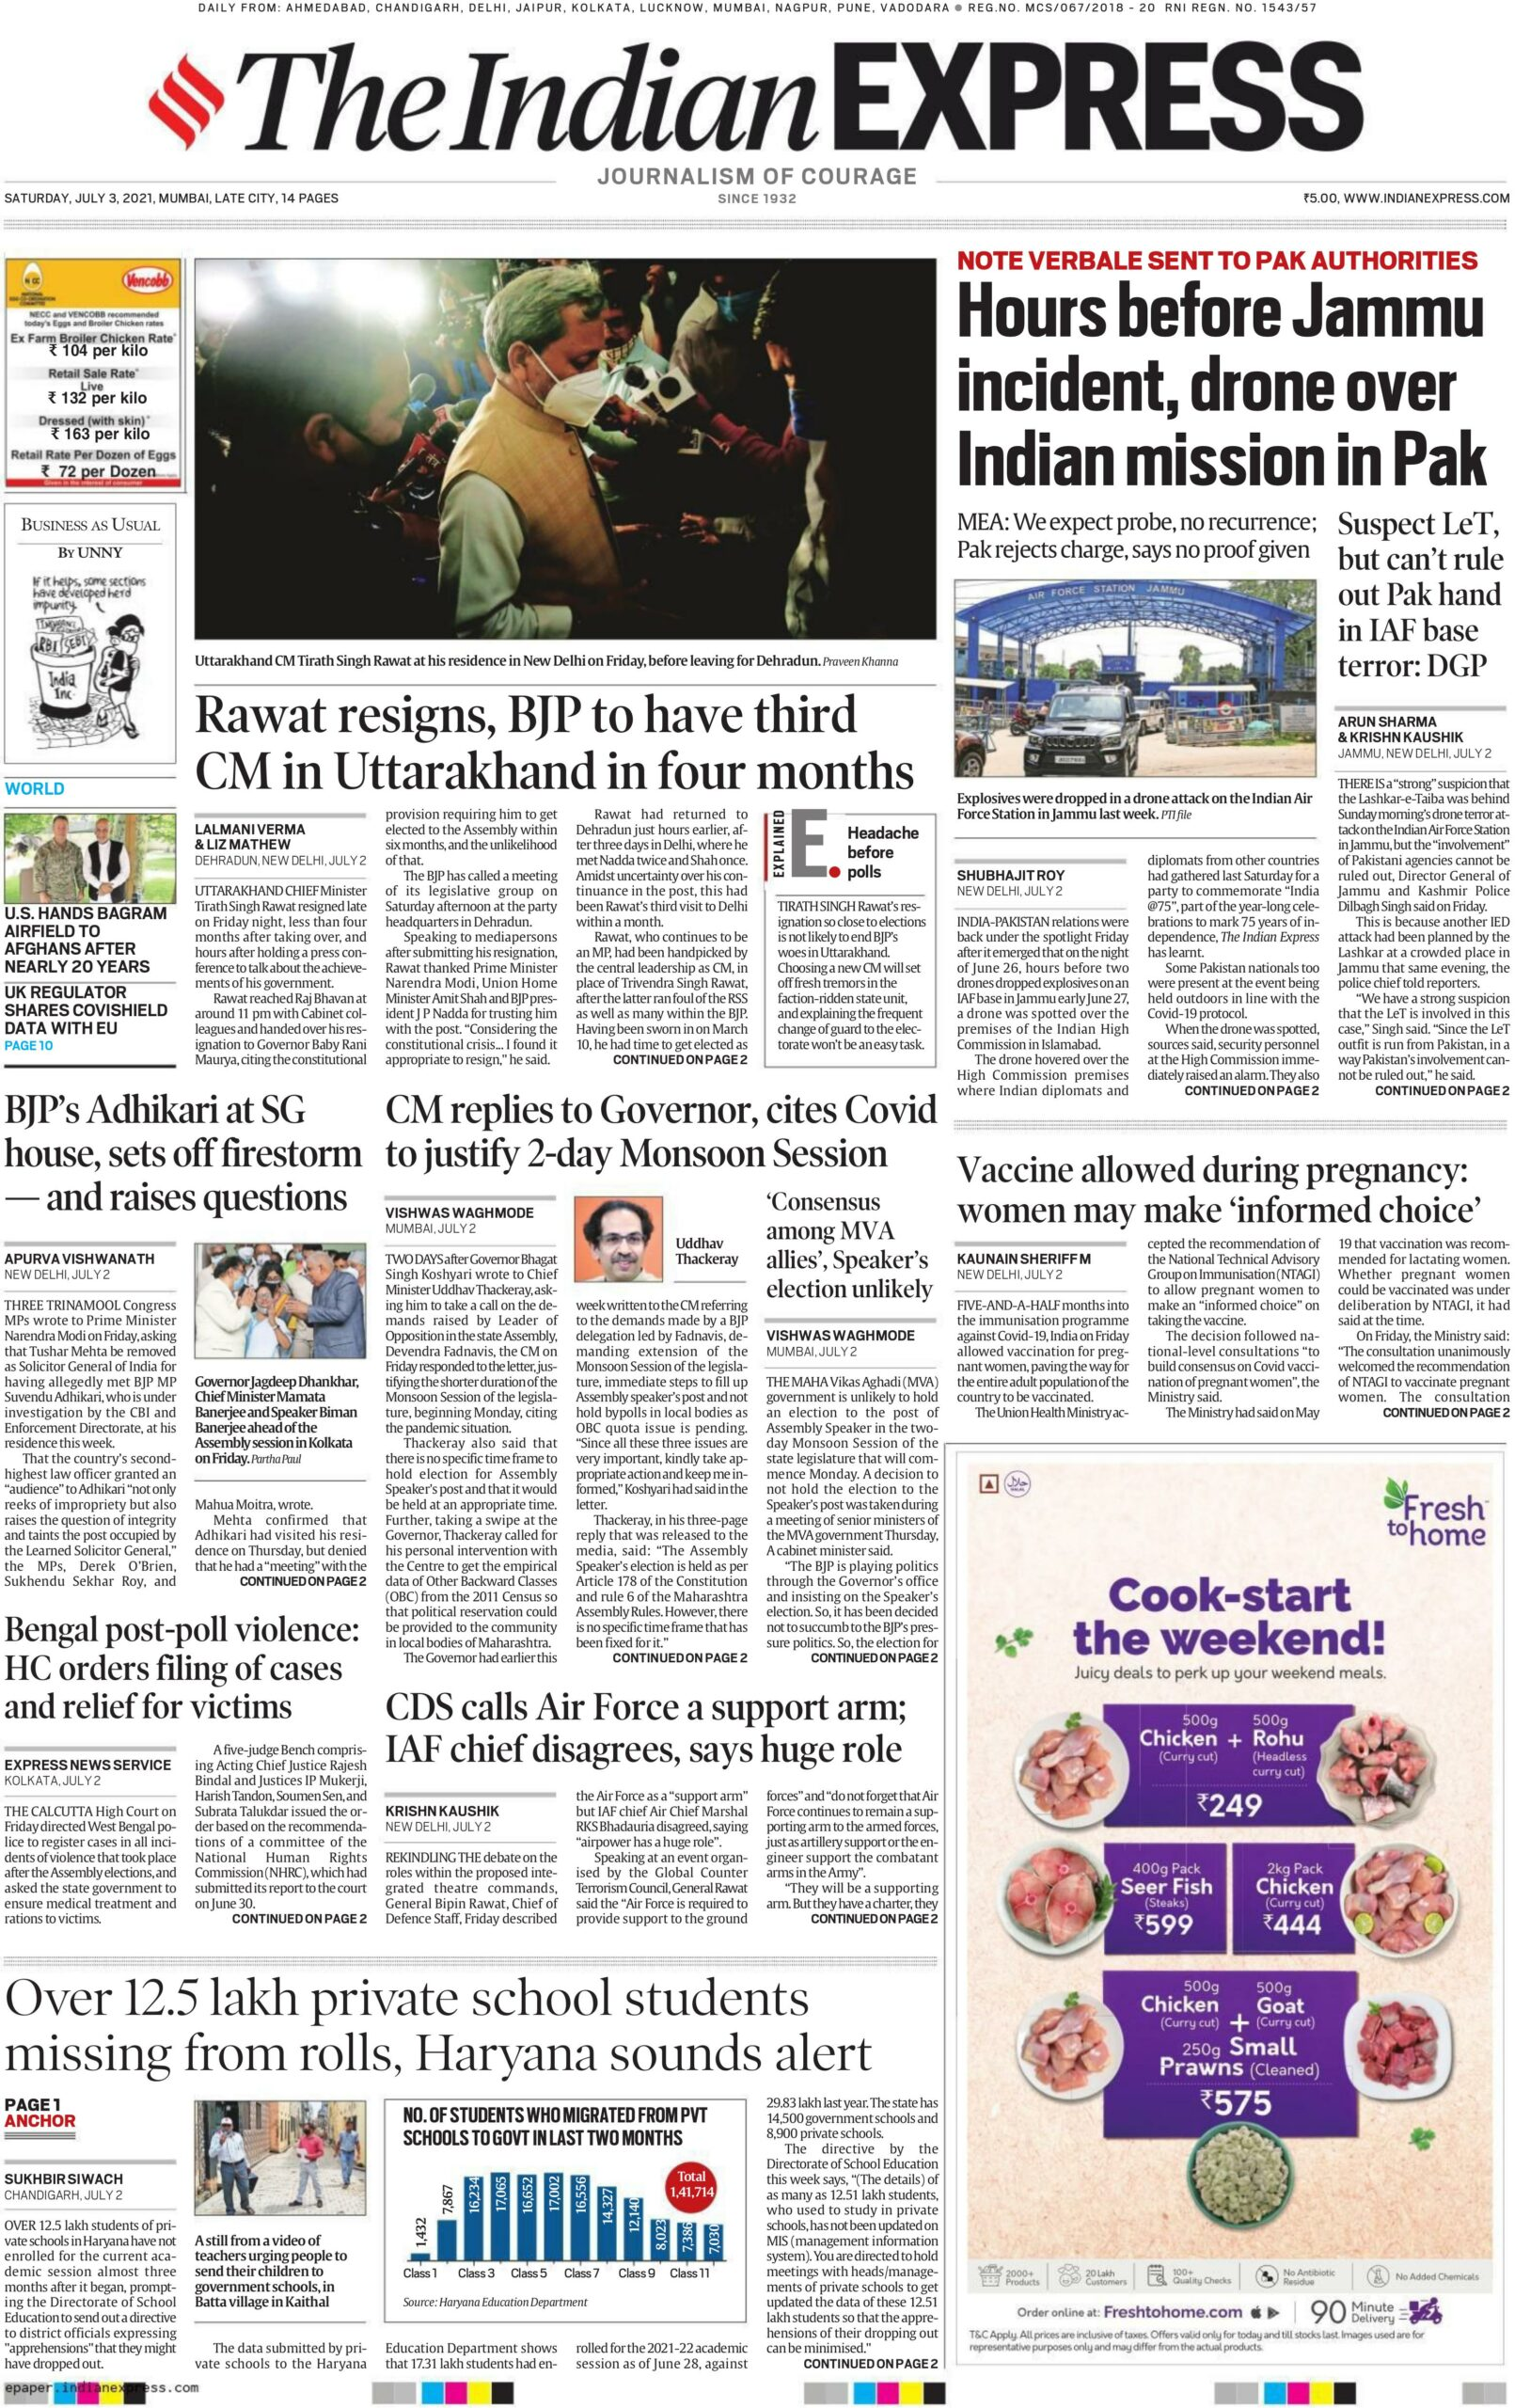 The Indian Express July 3, 2021